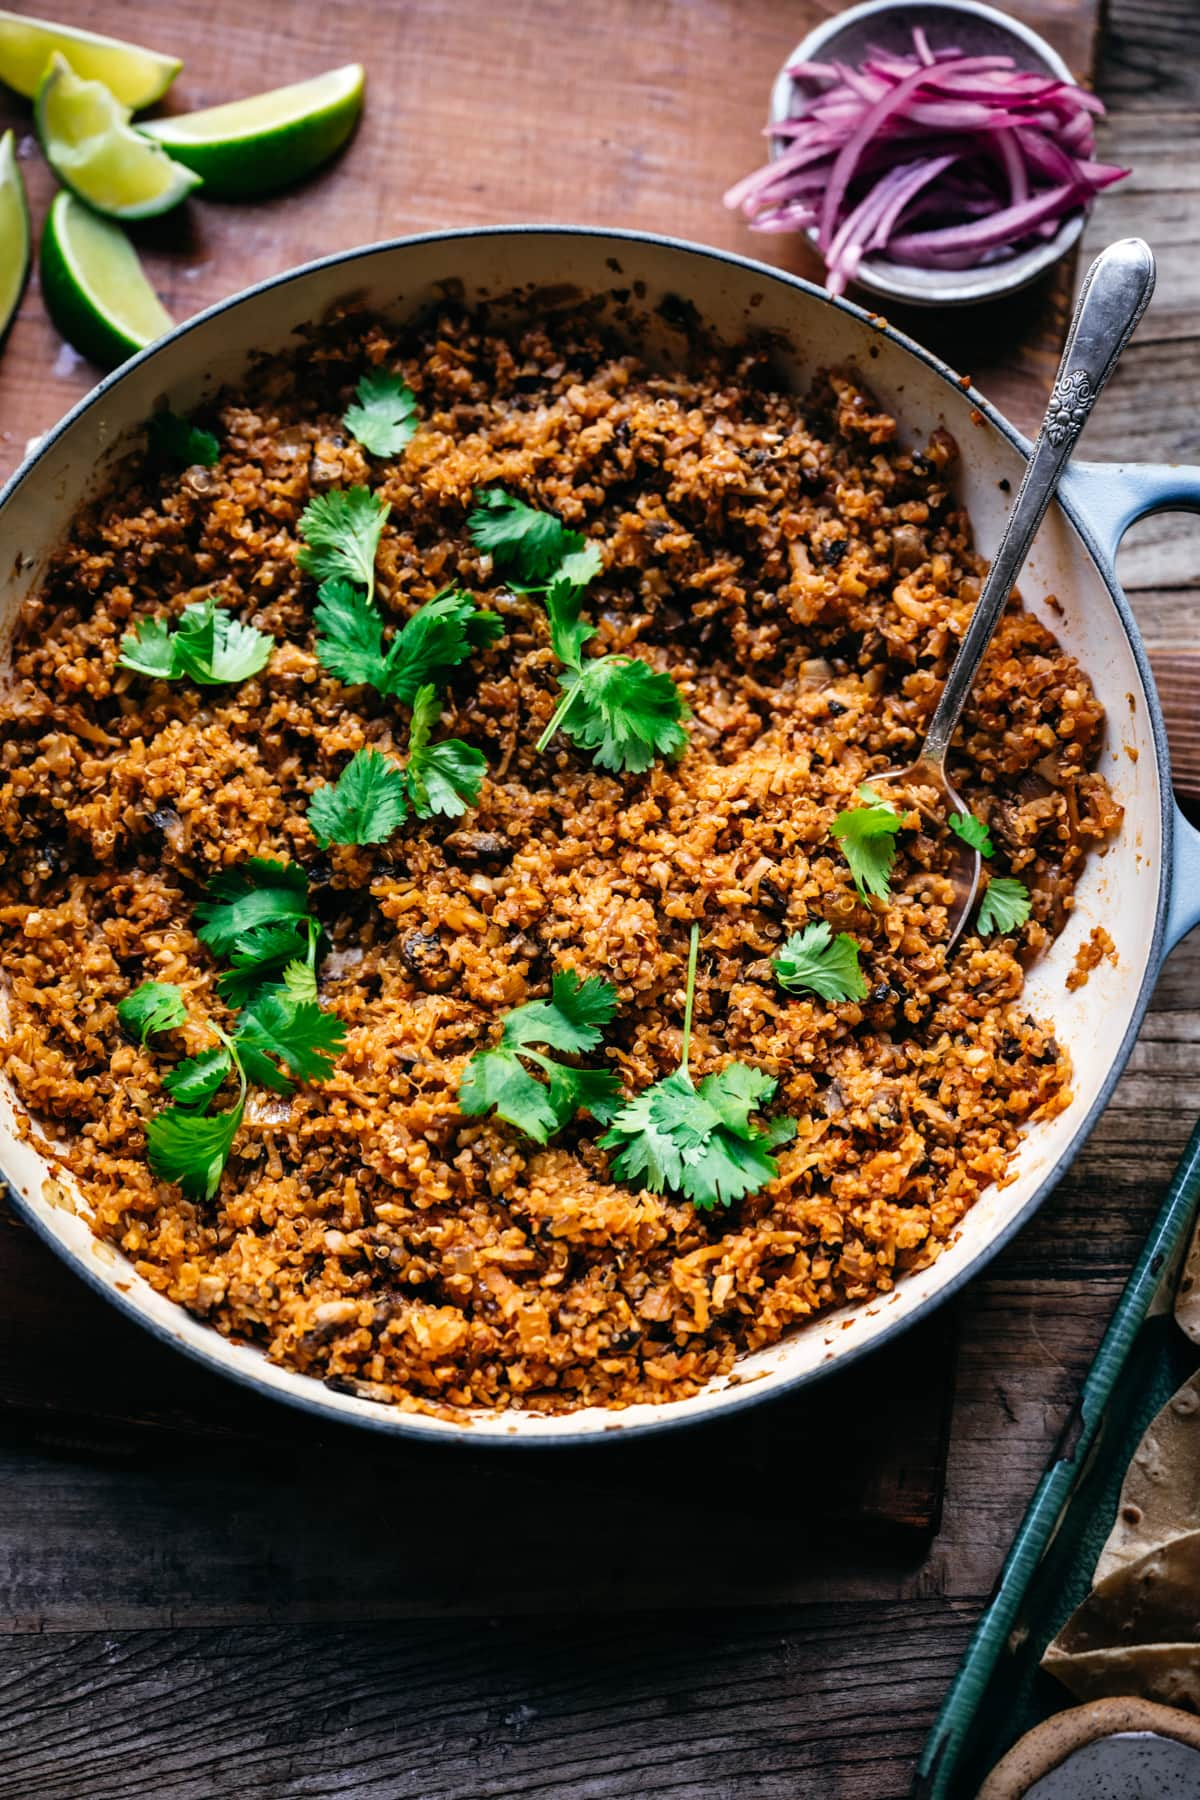 vegan taco meat in a large pan garnished with cilantro.